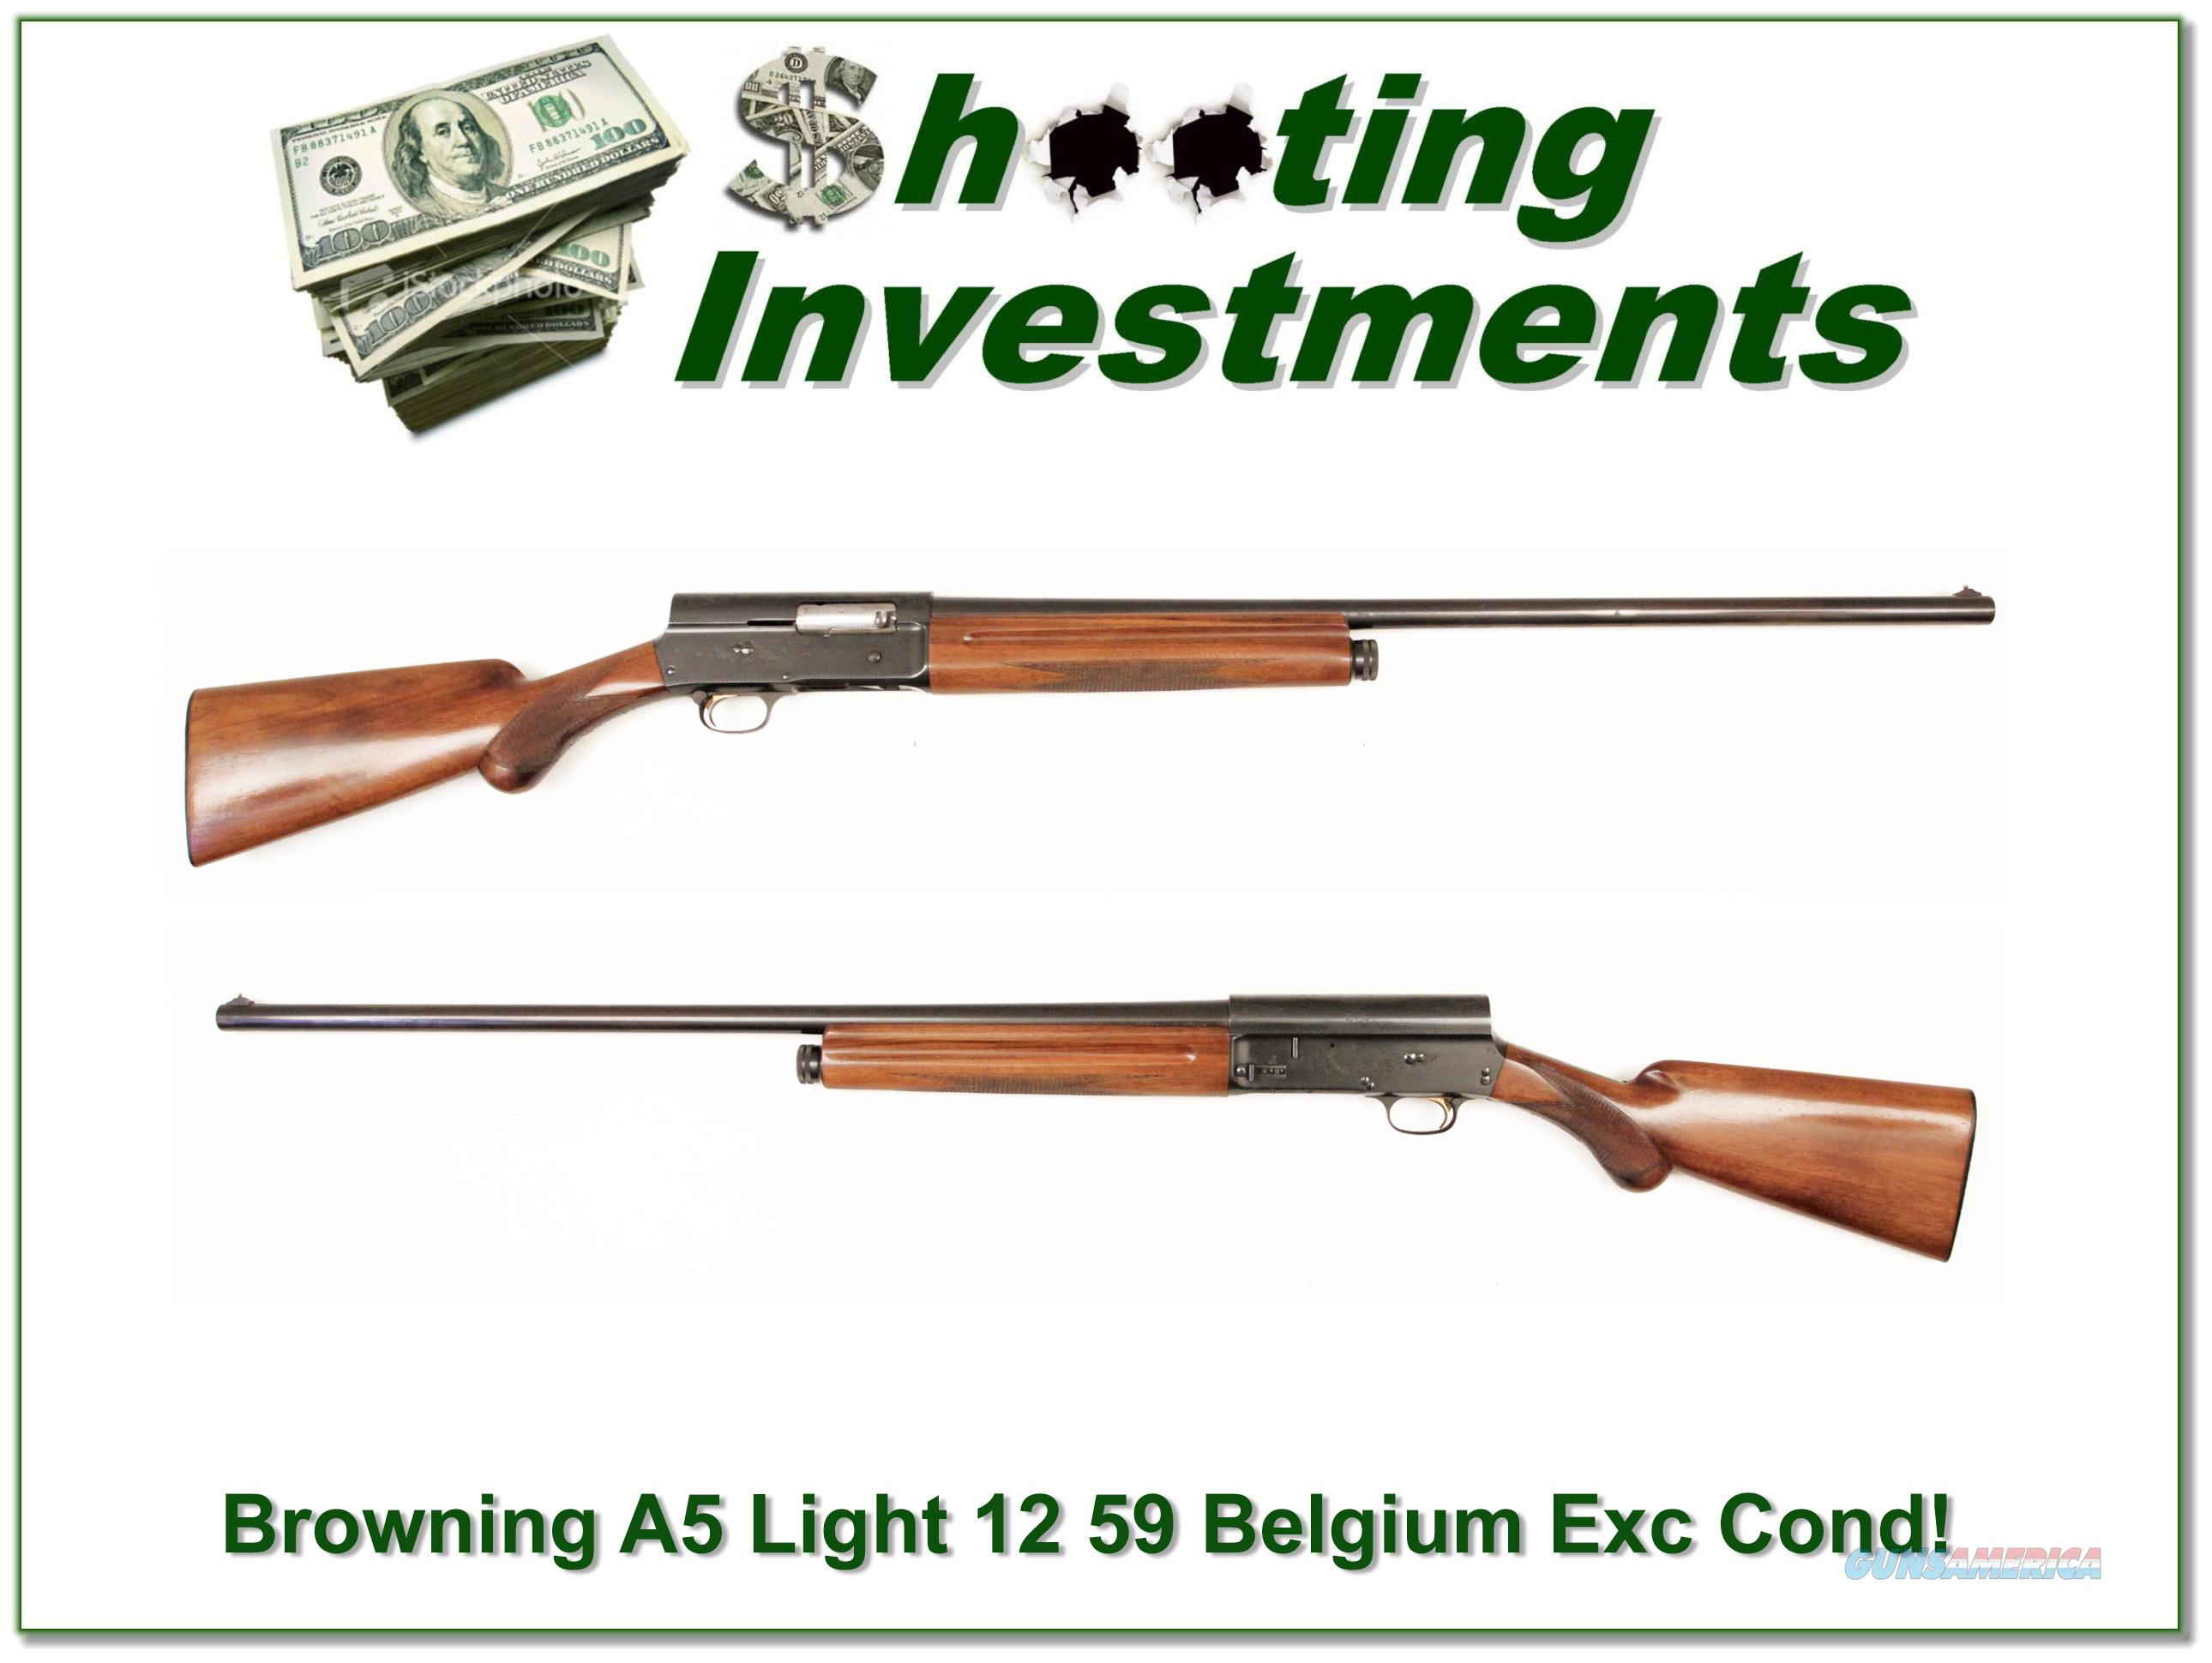 Browning A5 Light 12 59 Belgium Nice!  Guns > Shotguns > Browning Shotguns > Autoloaders > Hunting